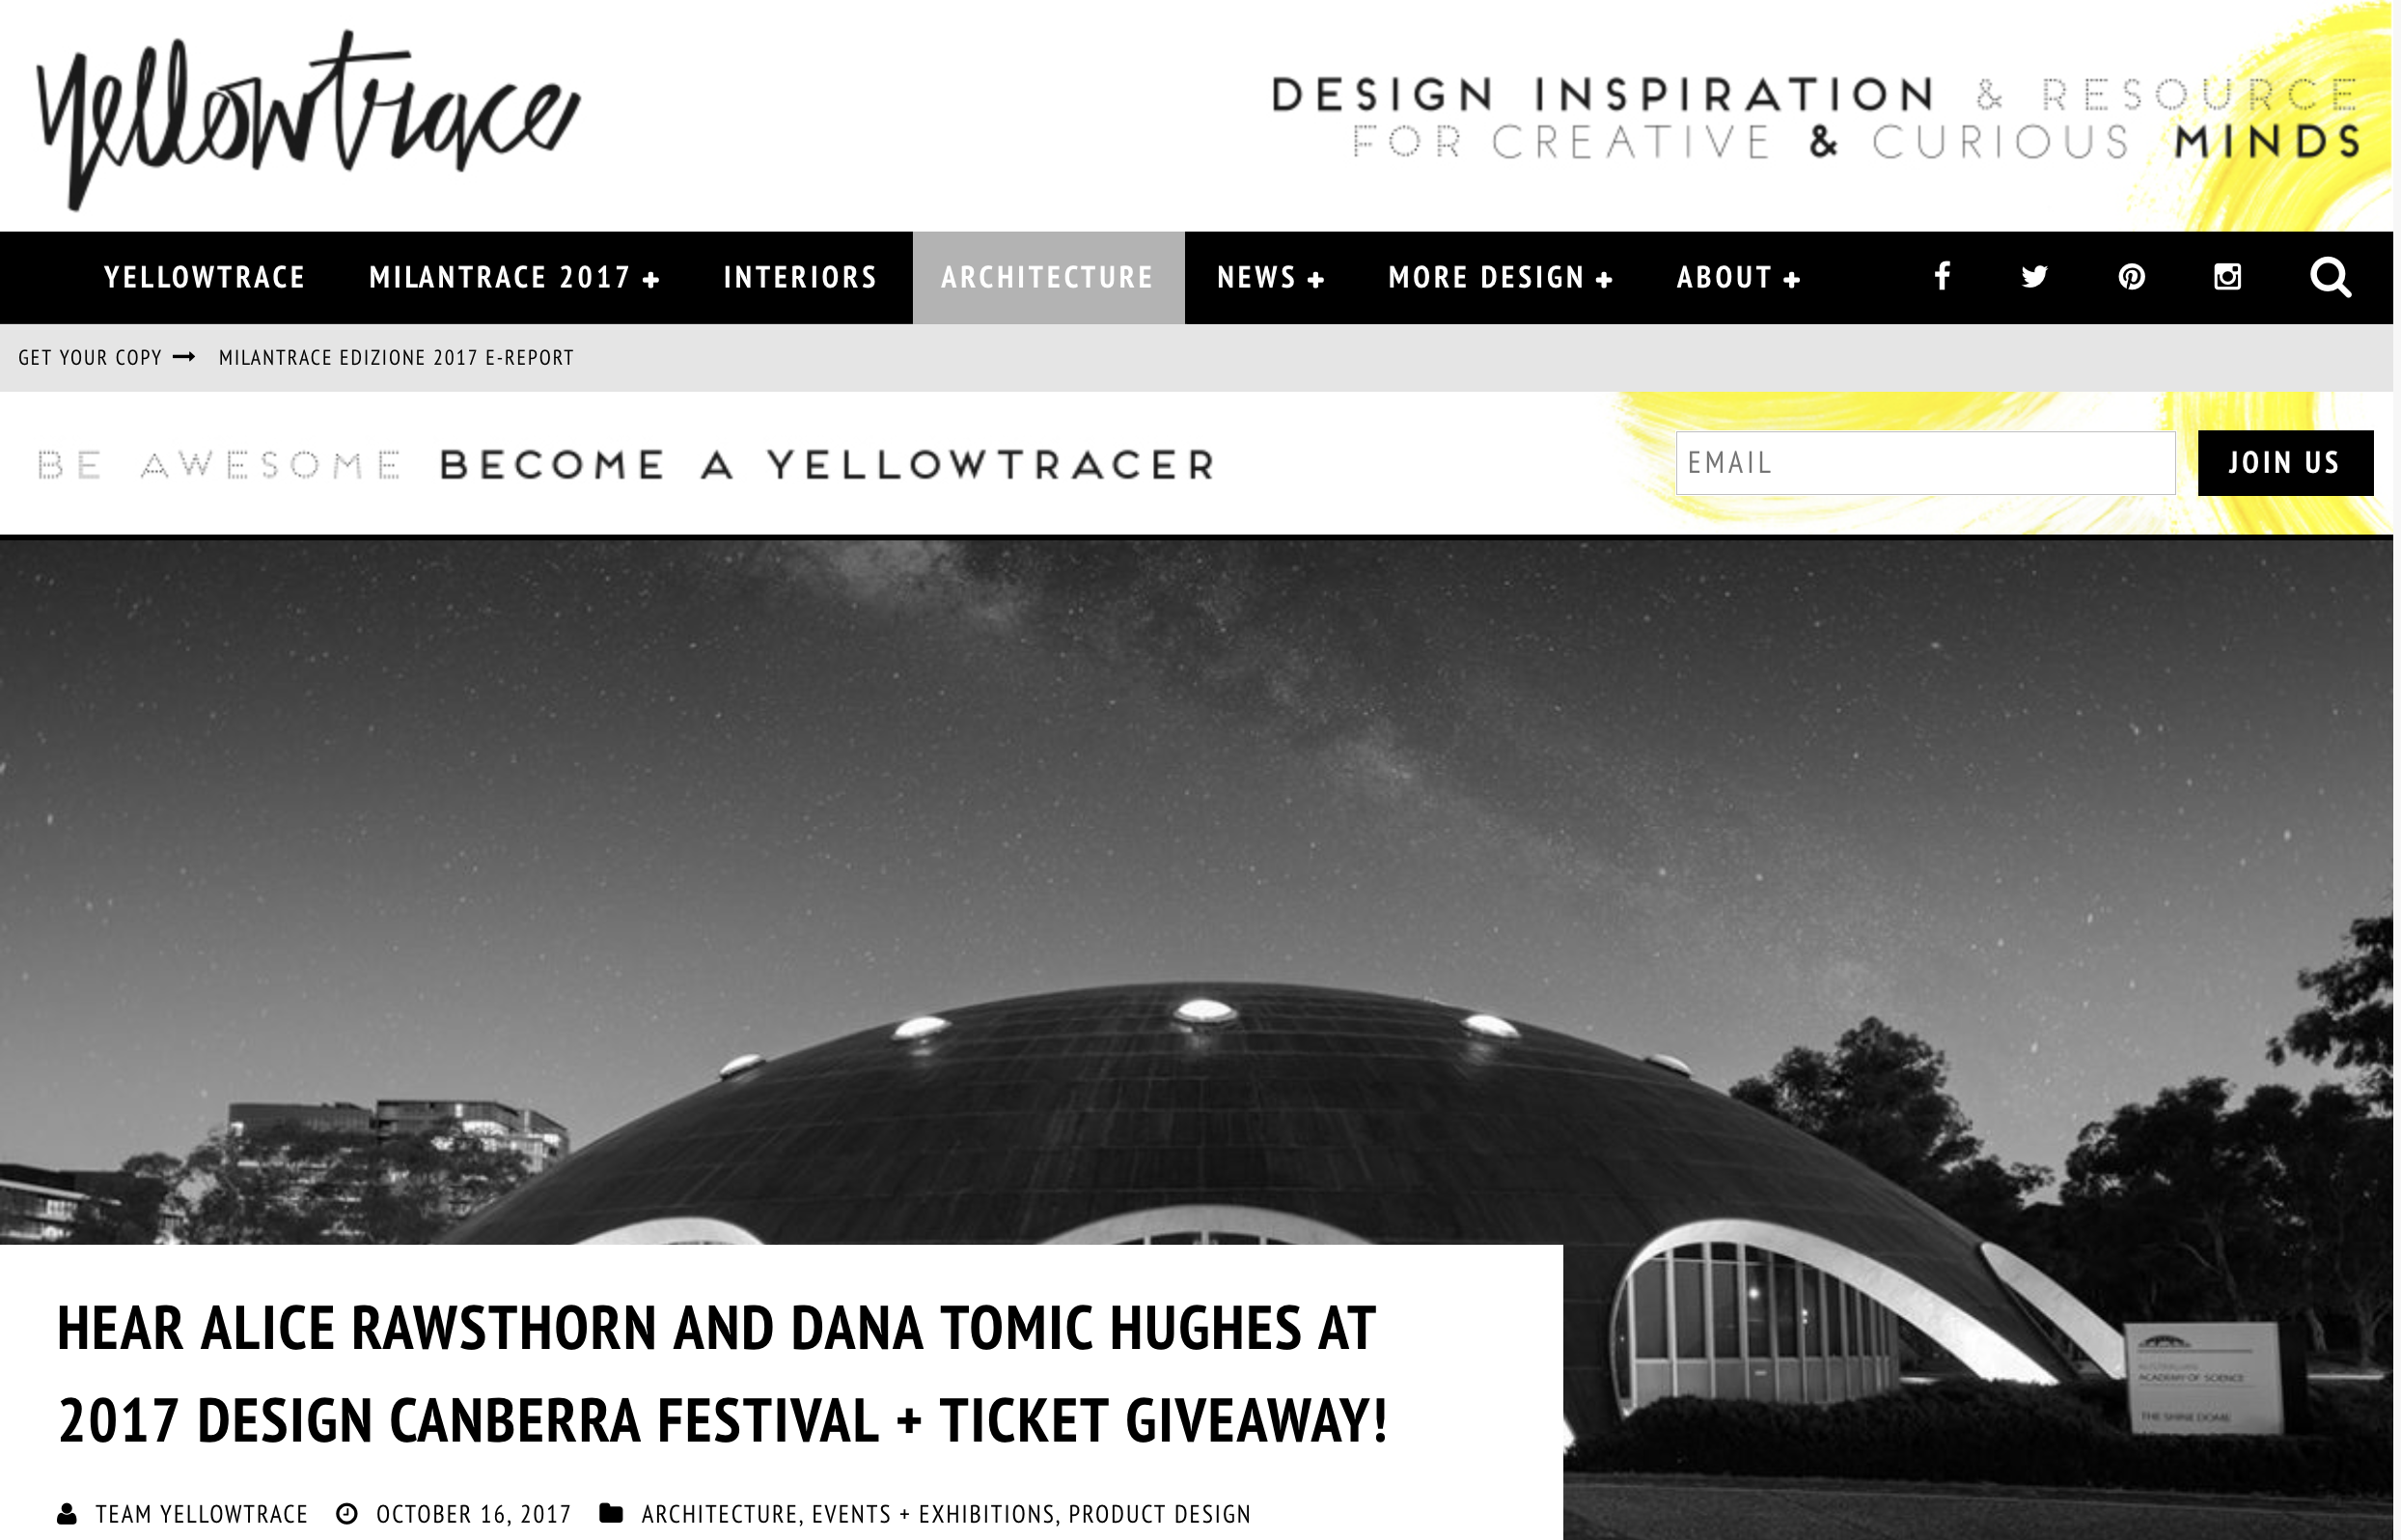 DESIGN CANBERRA - yellowtrace - object subject -  16 OCTOBER, 20171.png